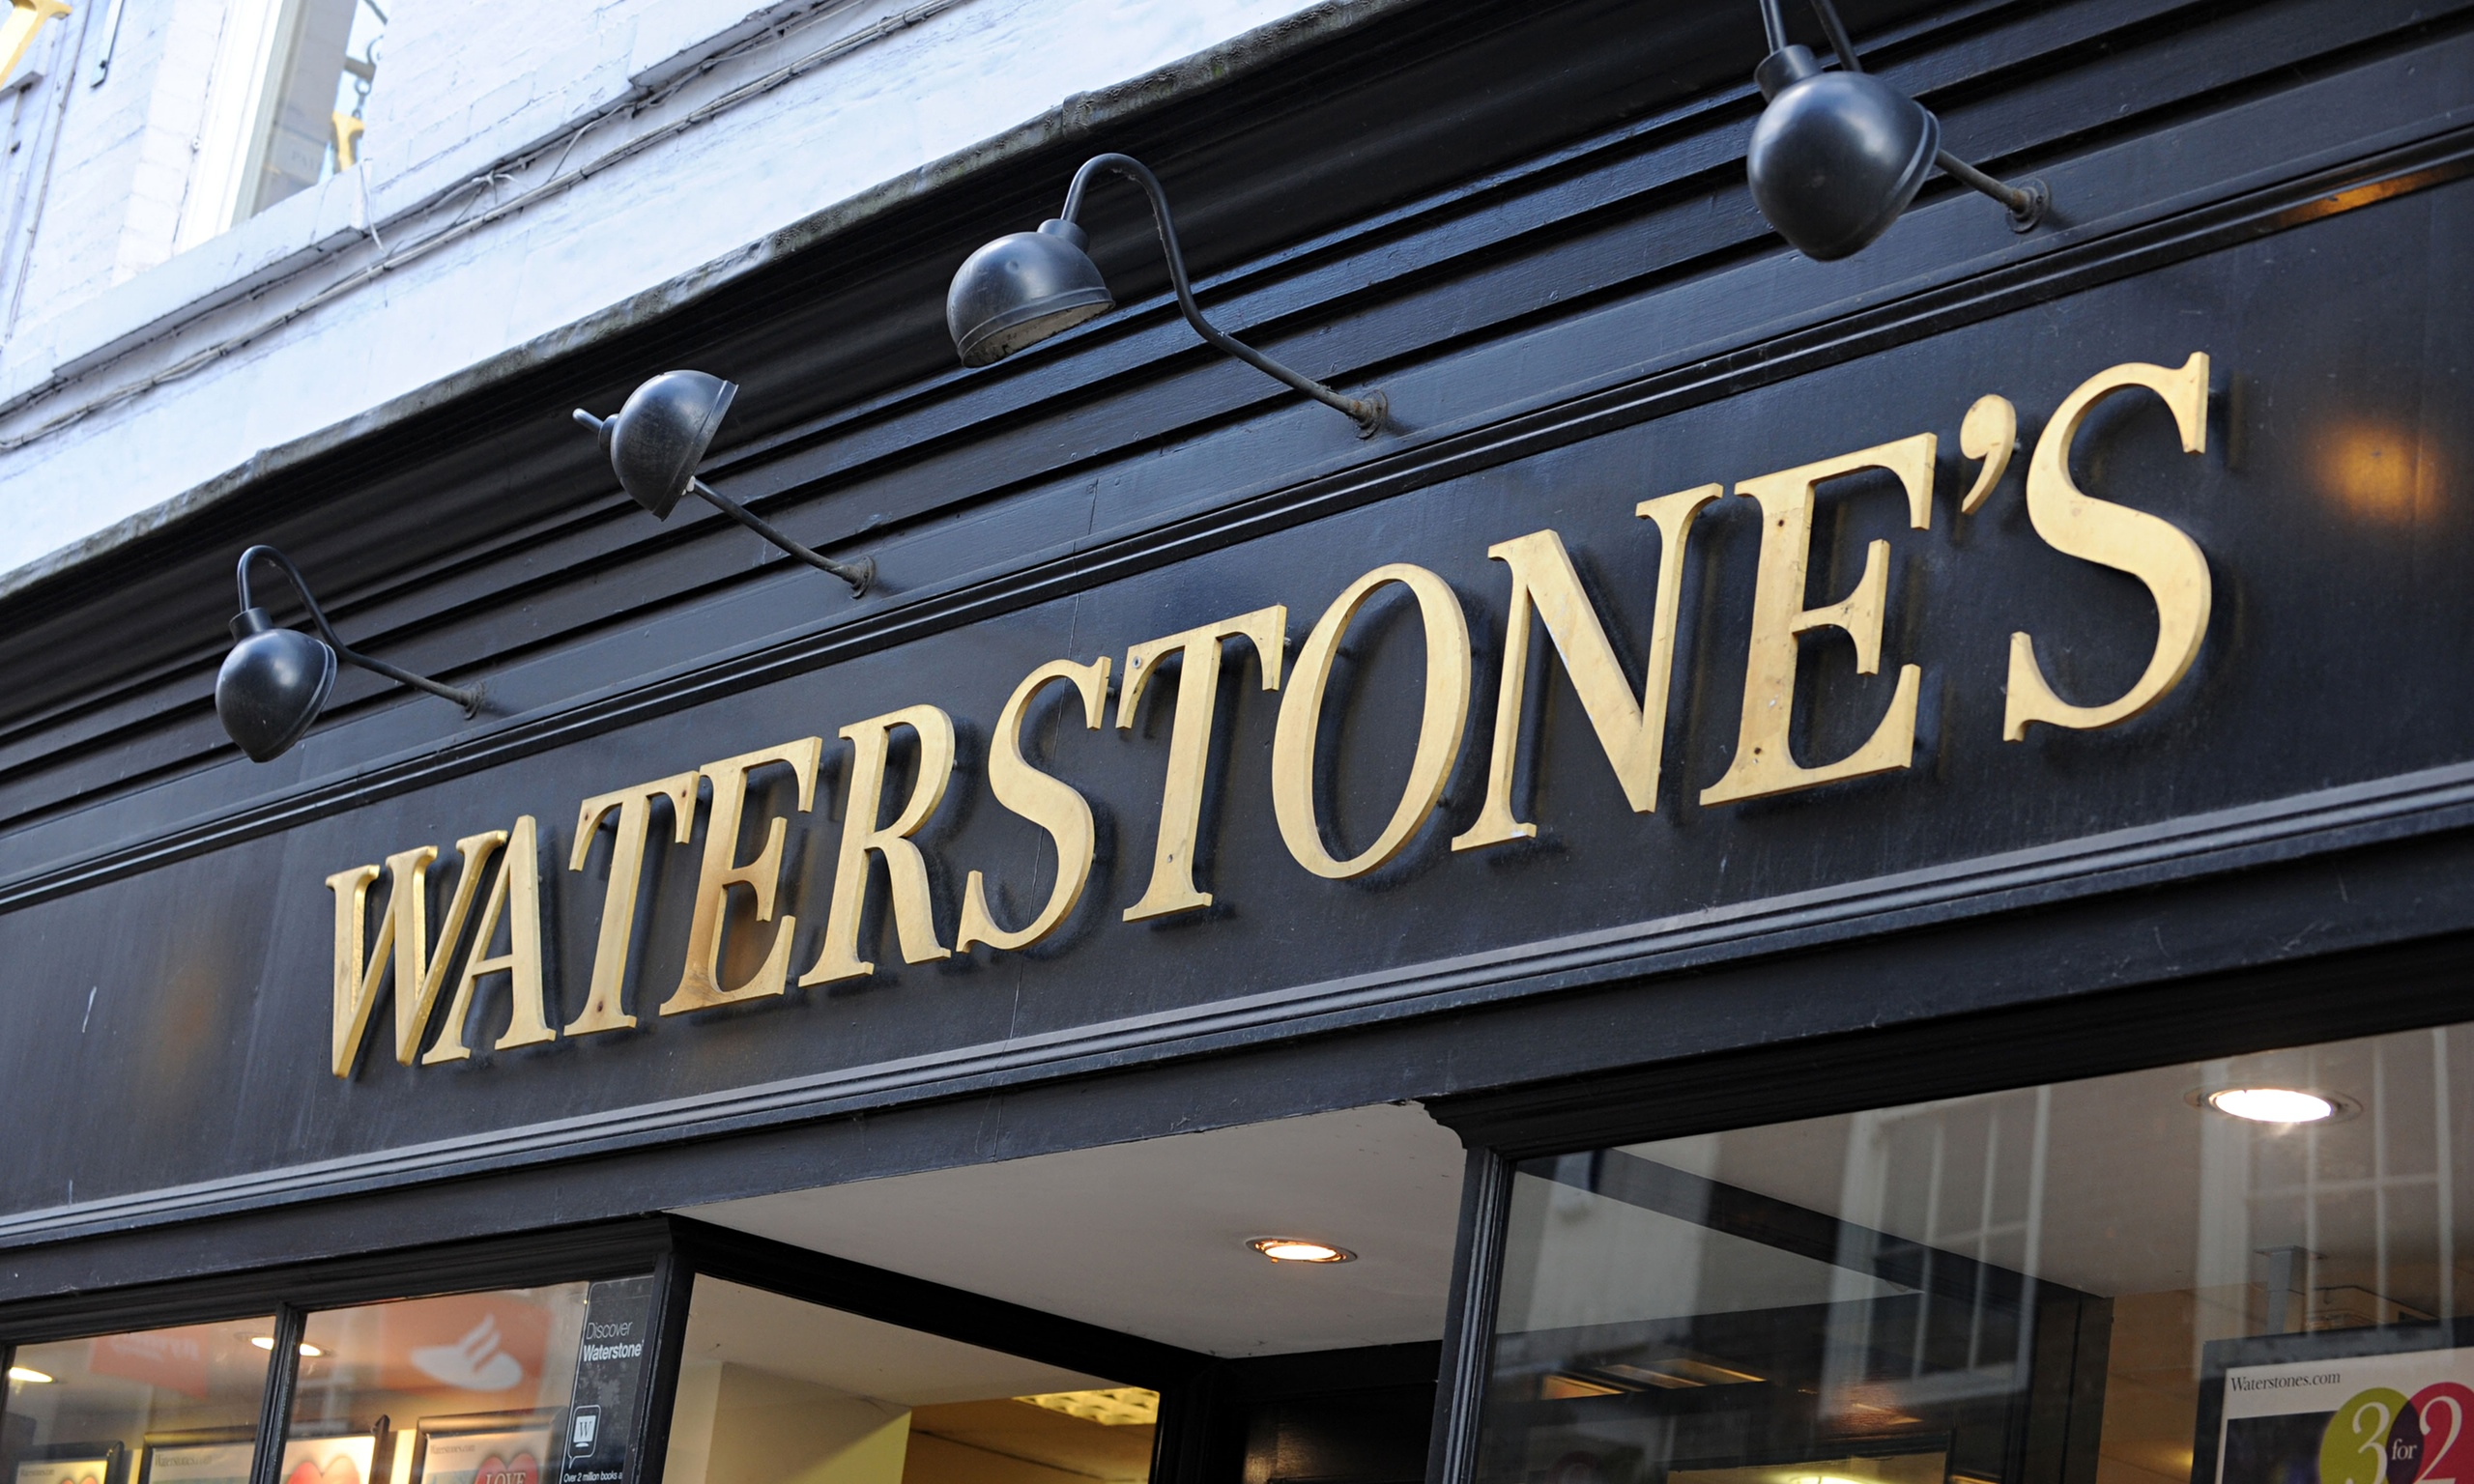 Waterstone's book shop sign